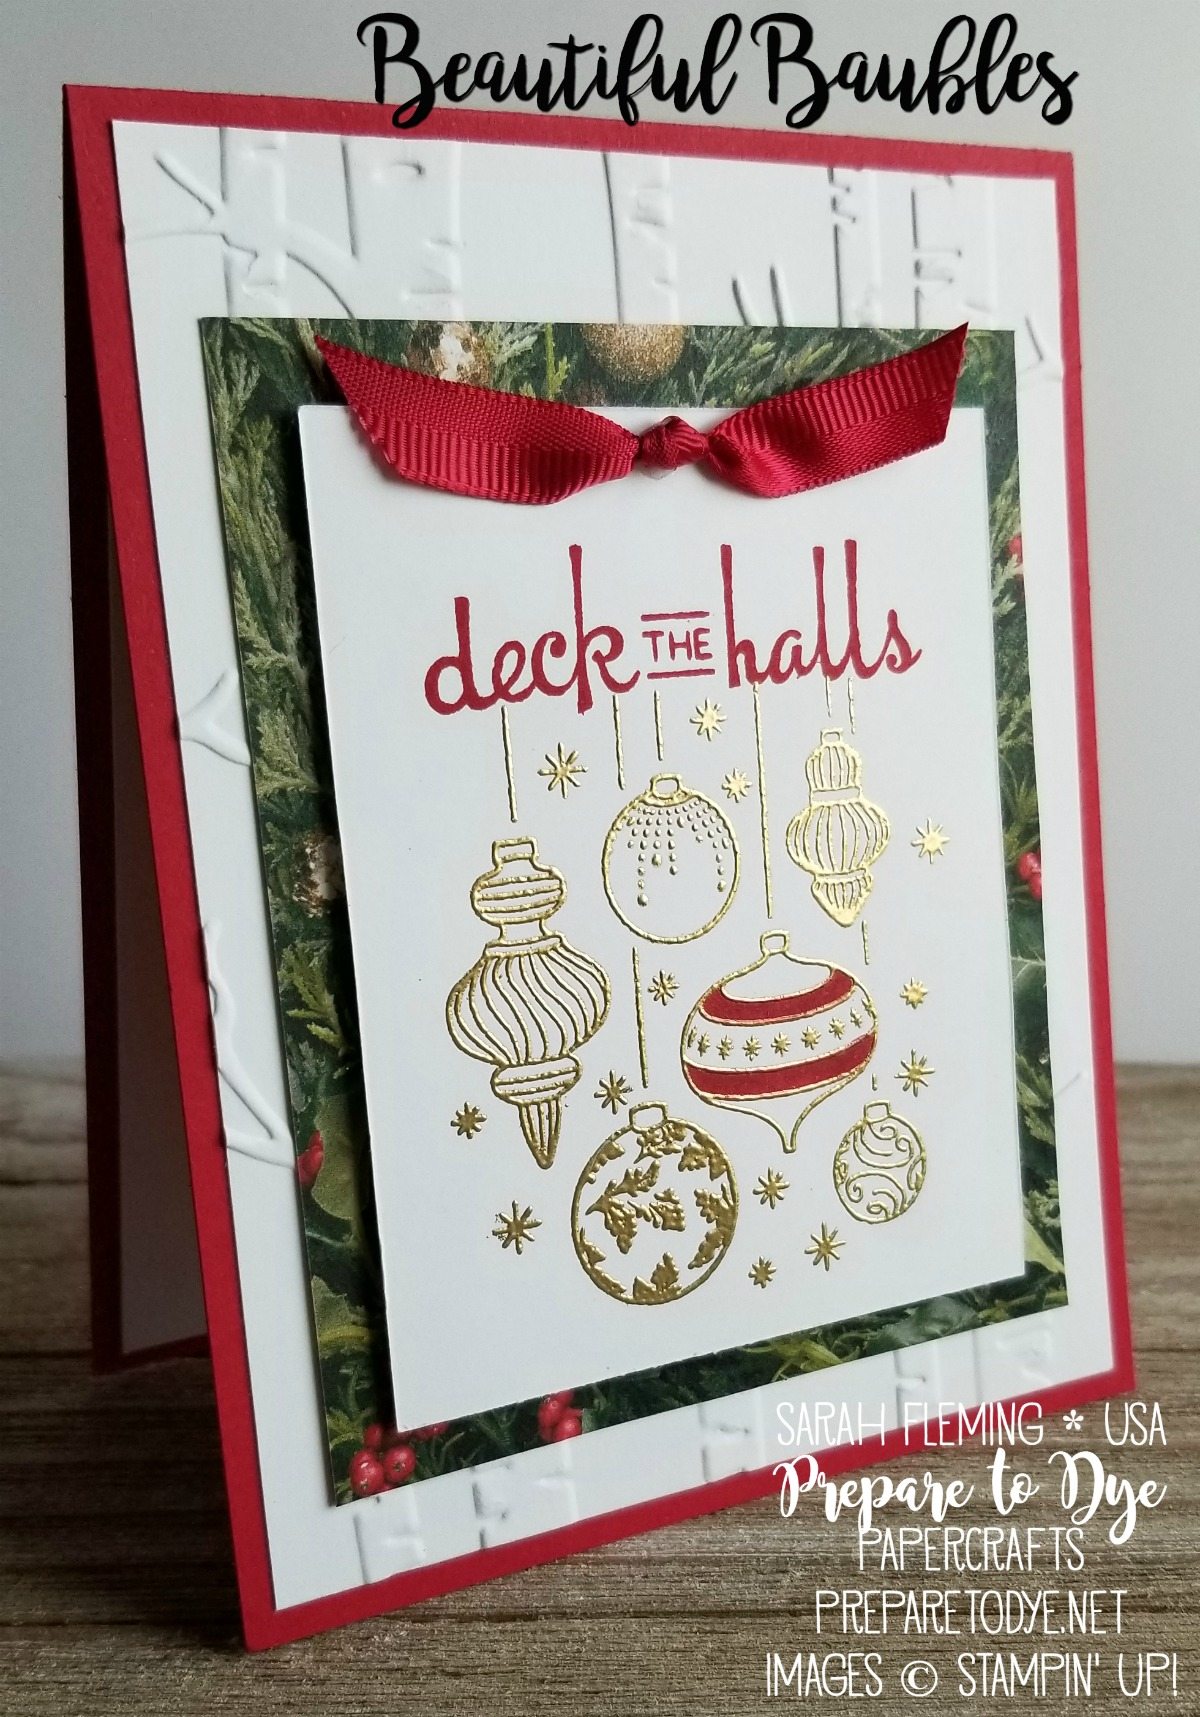 Stampin' Up! Beautiful Baubles with All Is Bright paper, Real Red Mixed Satin Ribbon, deck the halls sentiment, Woodland embossing folder, Stampin' Blends - handmade Christmas card with heat embossing and dry embossing - Sarah Fleming - Prepare to Dye Papercrafts